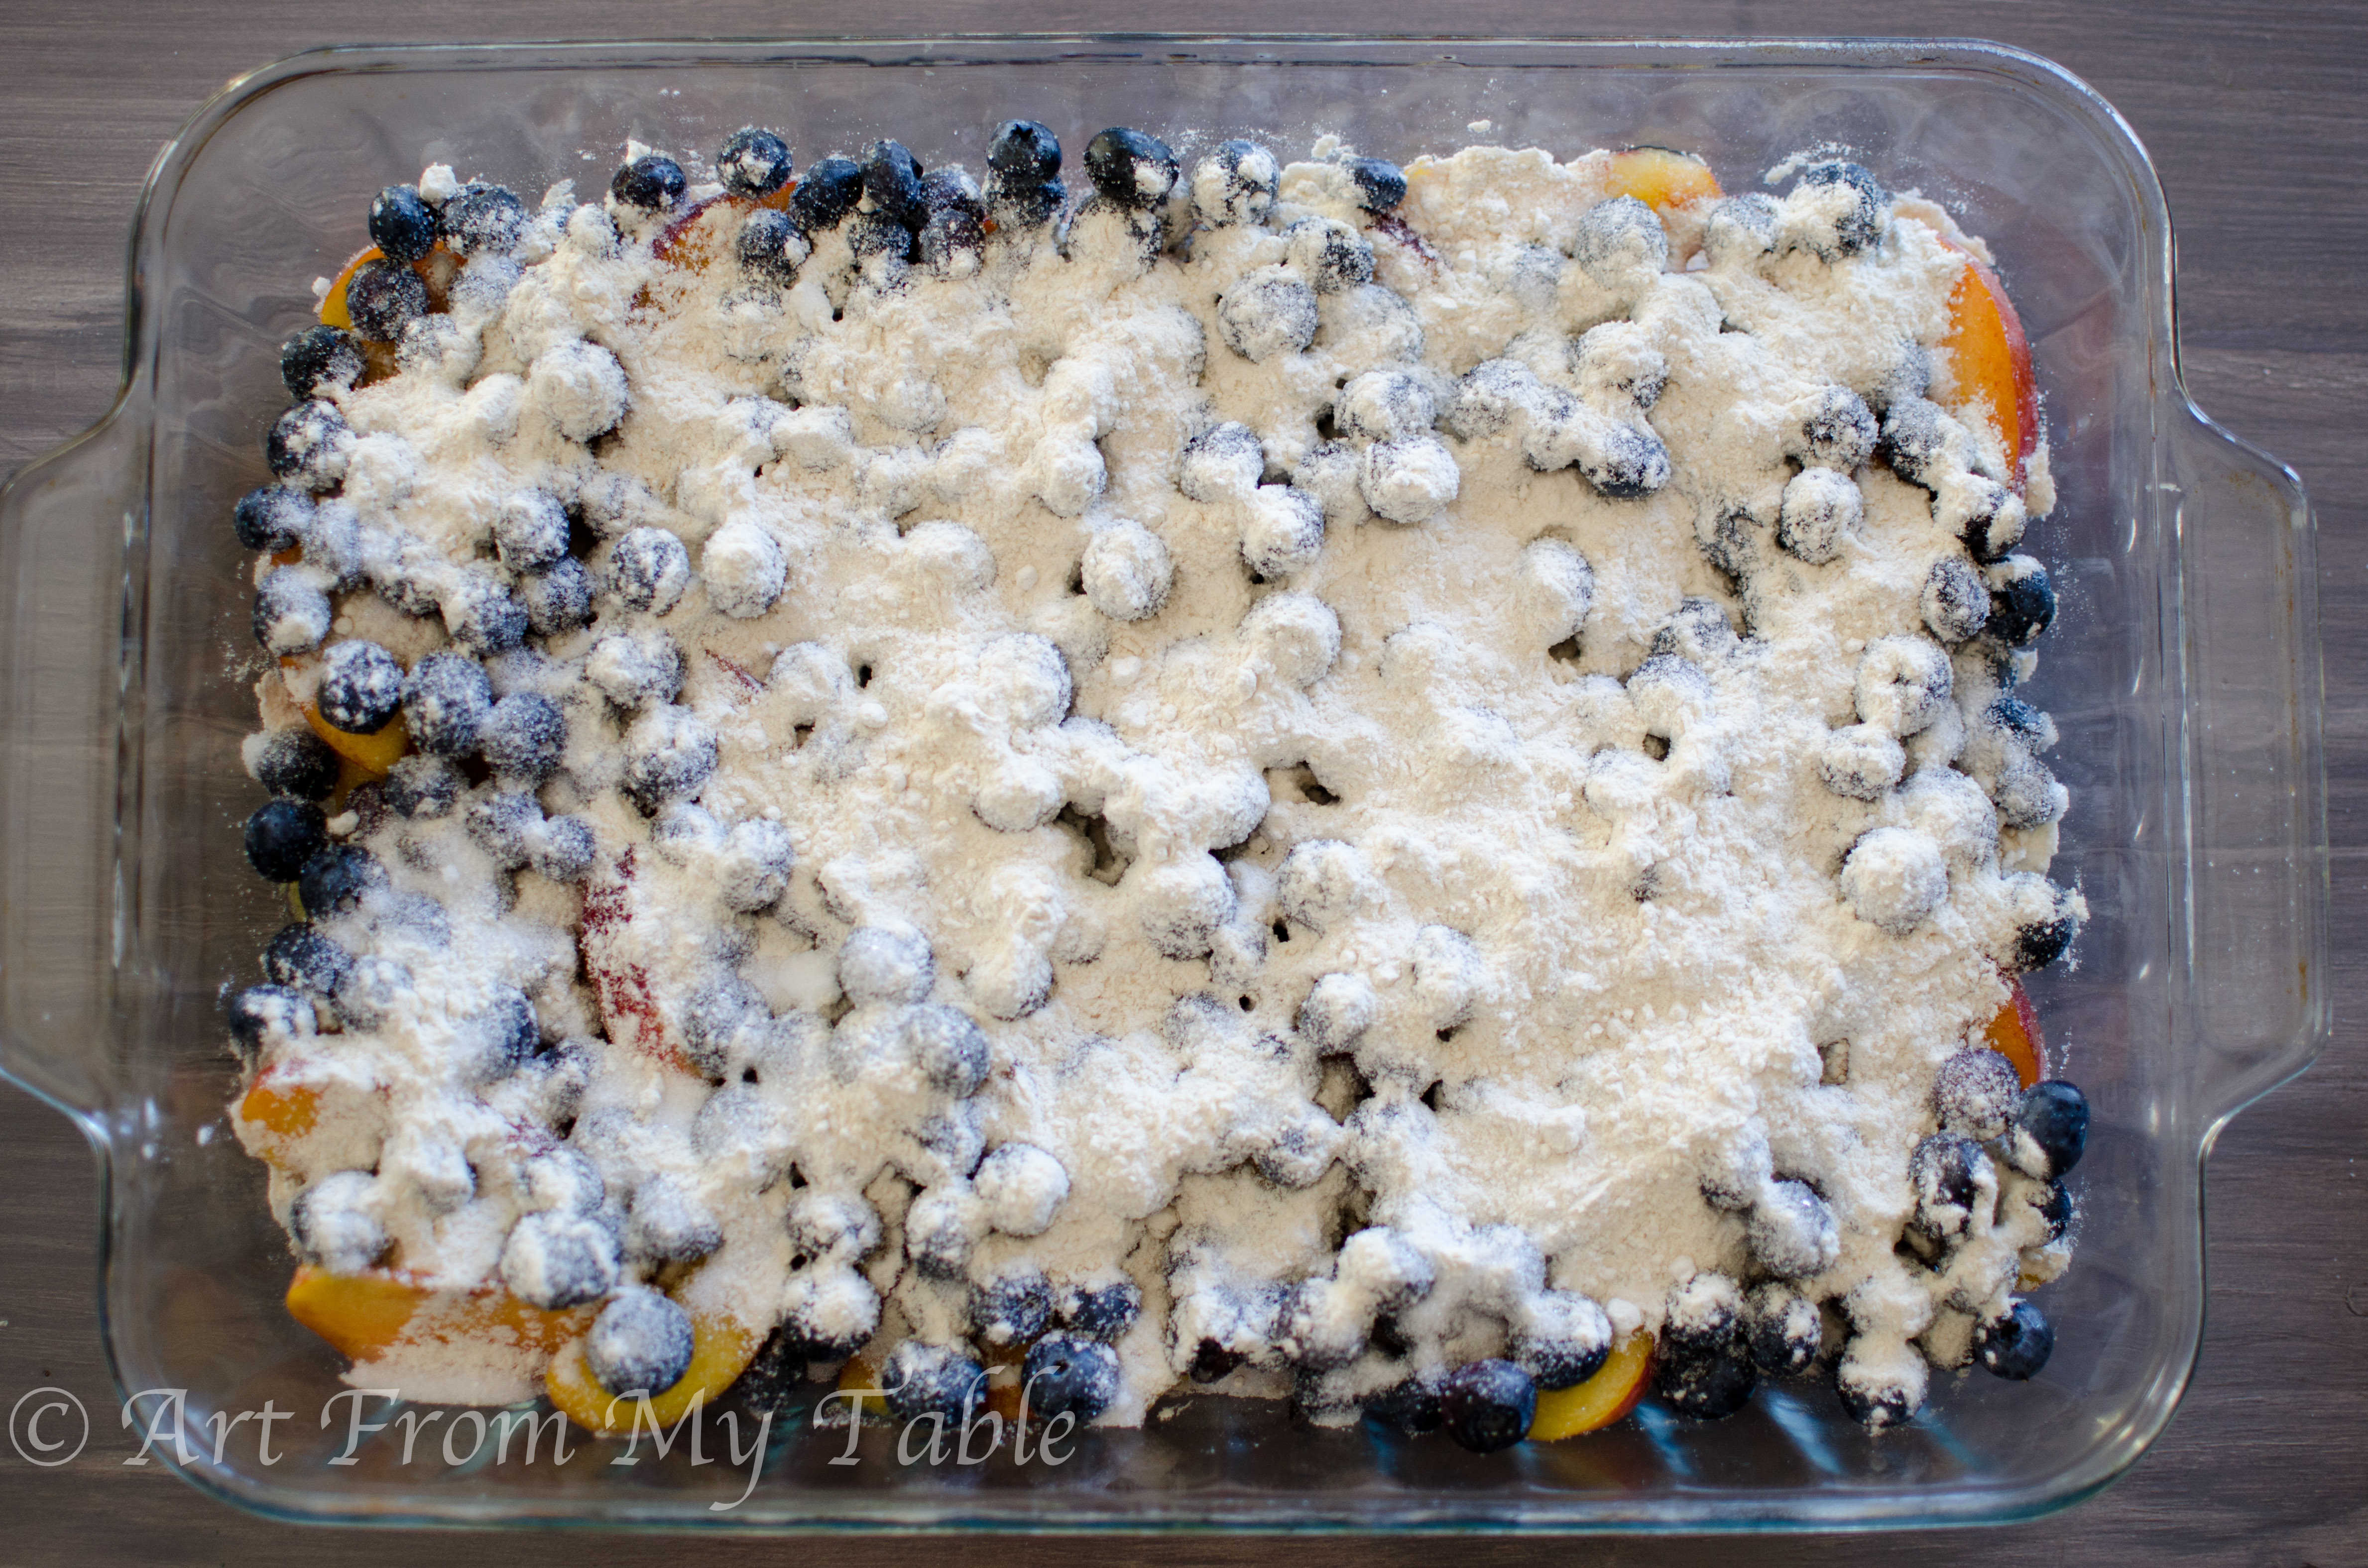 Fresh peaches and blueberries with sugar and flour sprinkled over top.